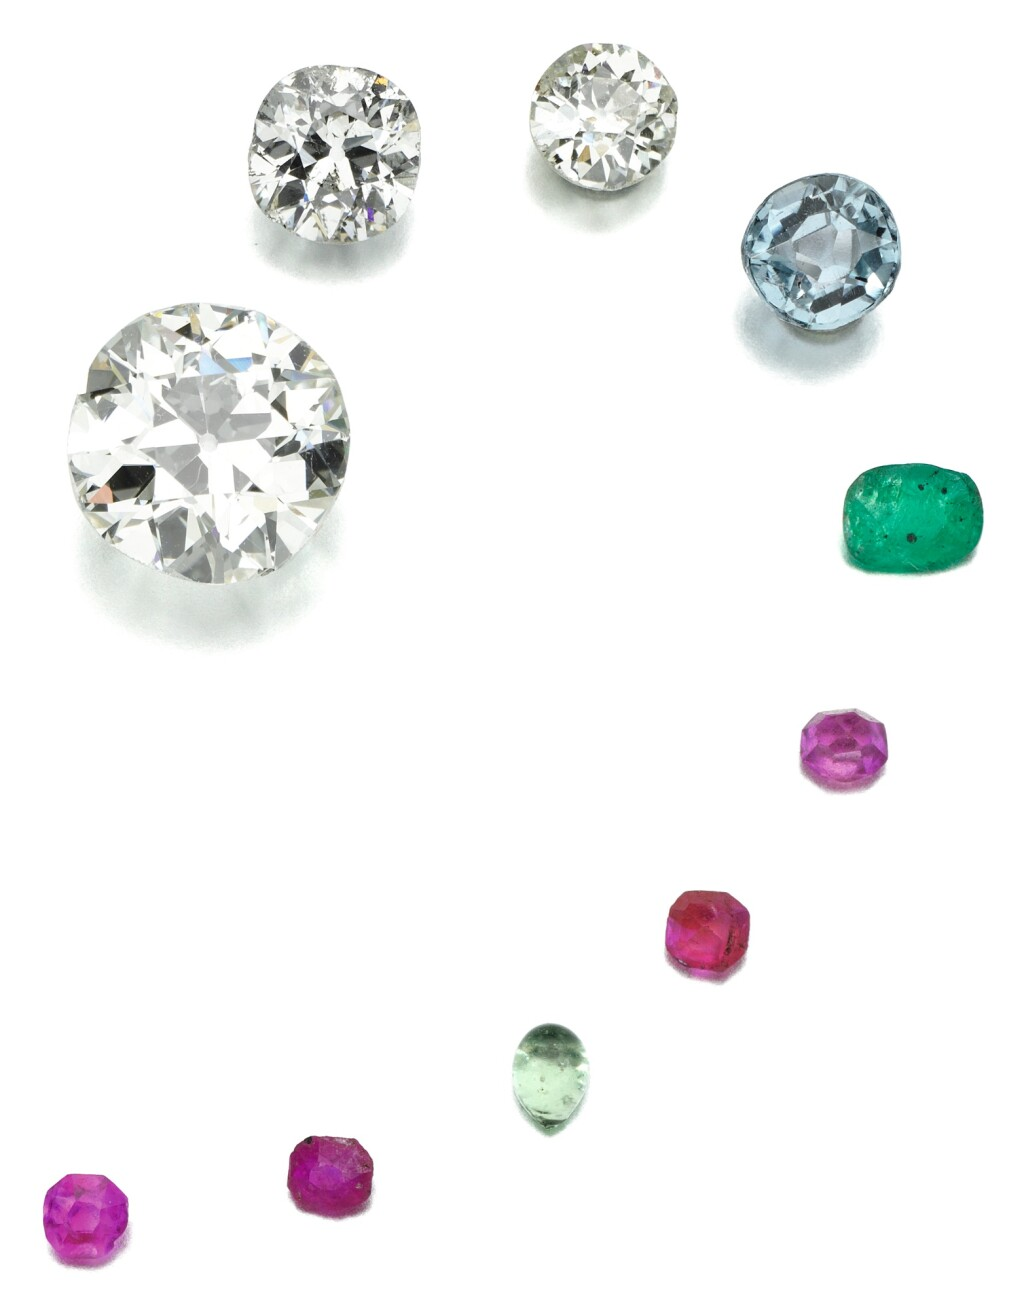 PARCEL OF UNMOUNTED GEMSTONES